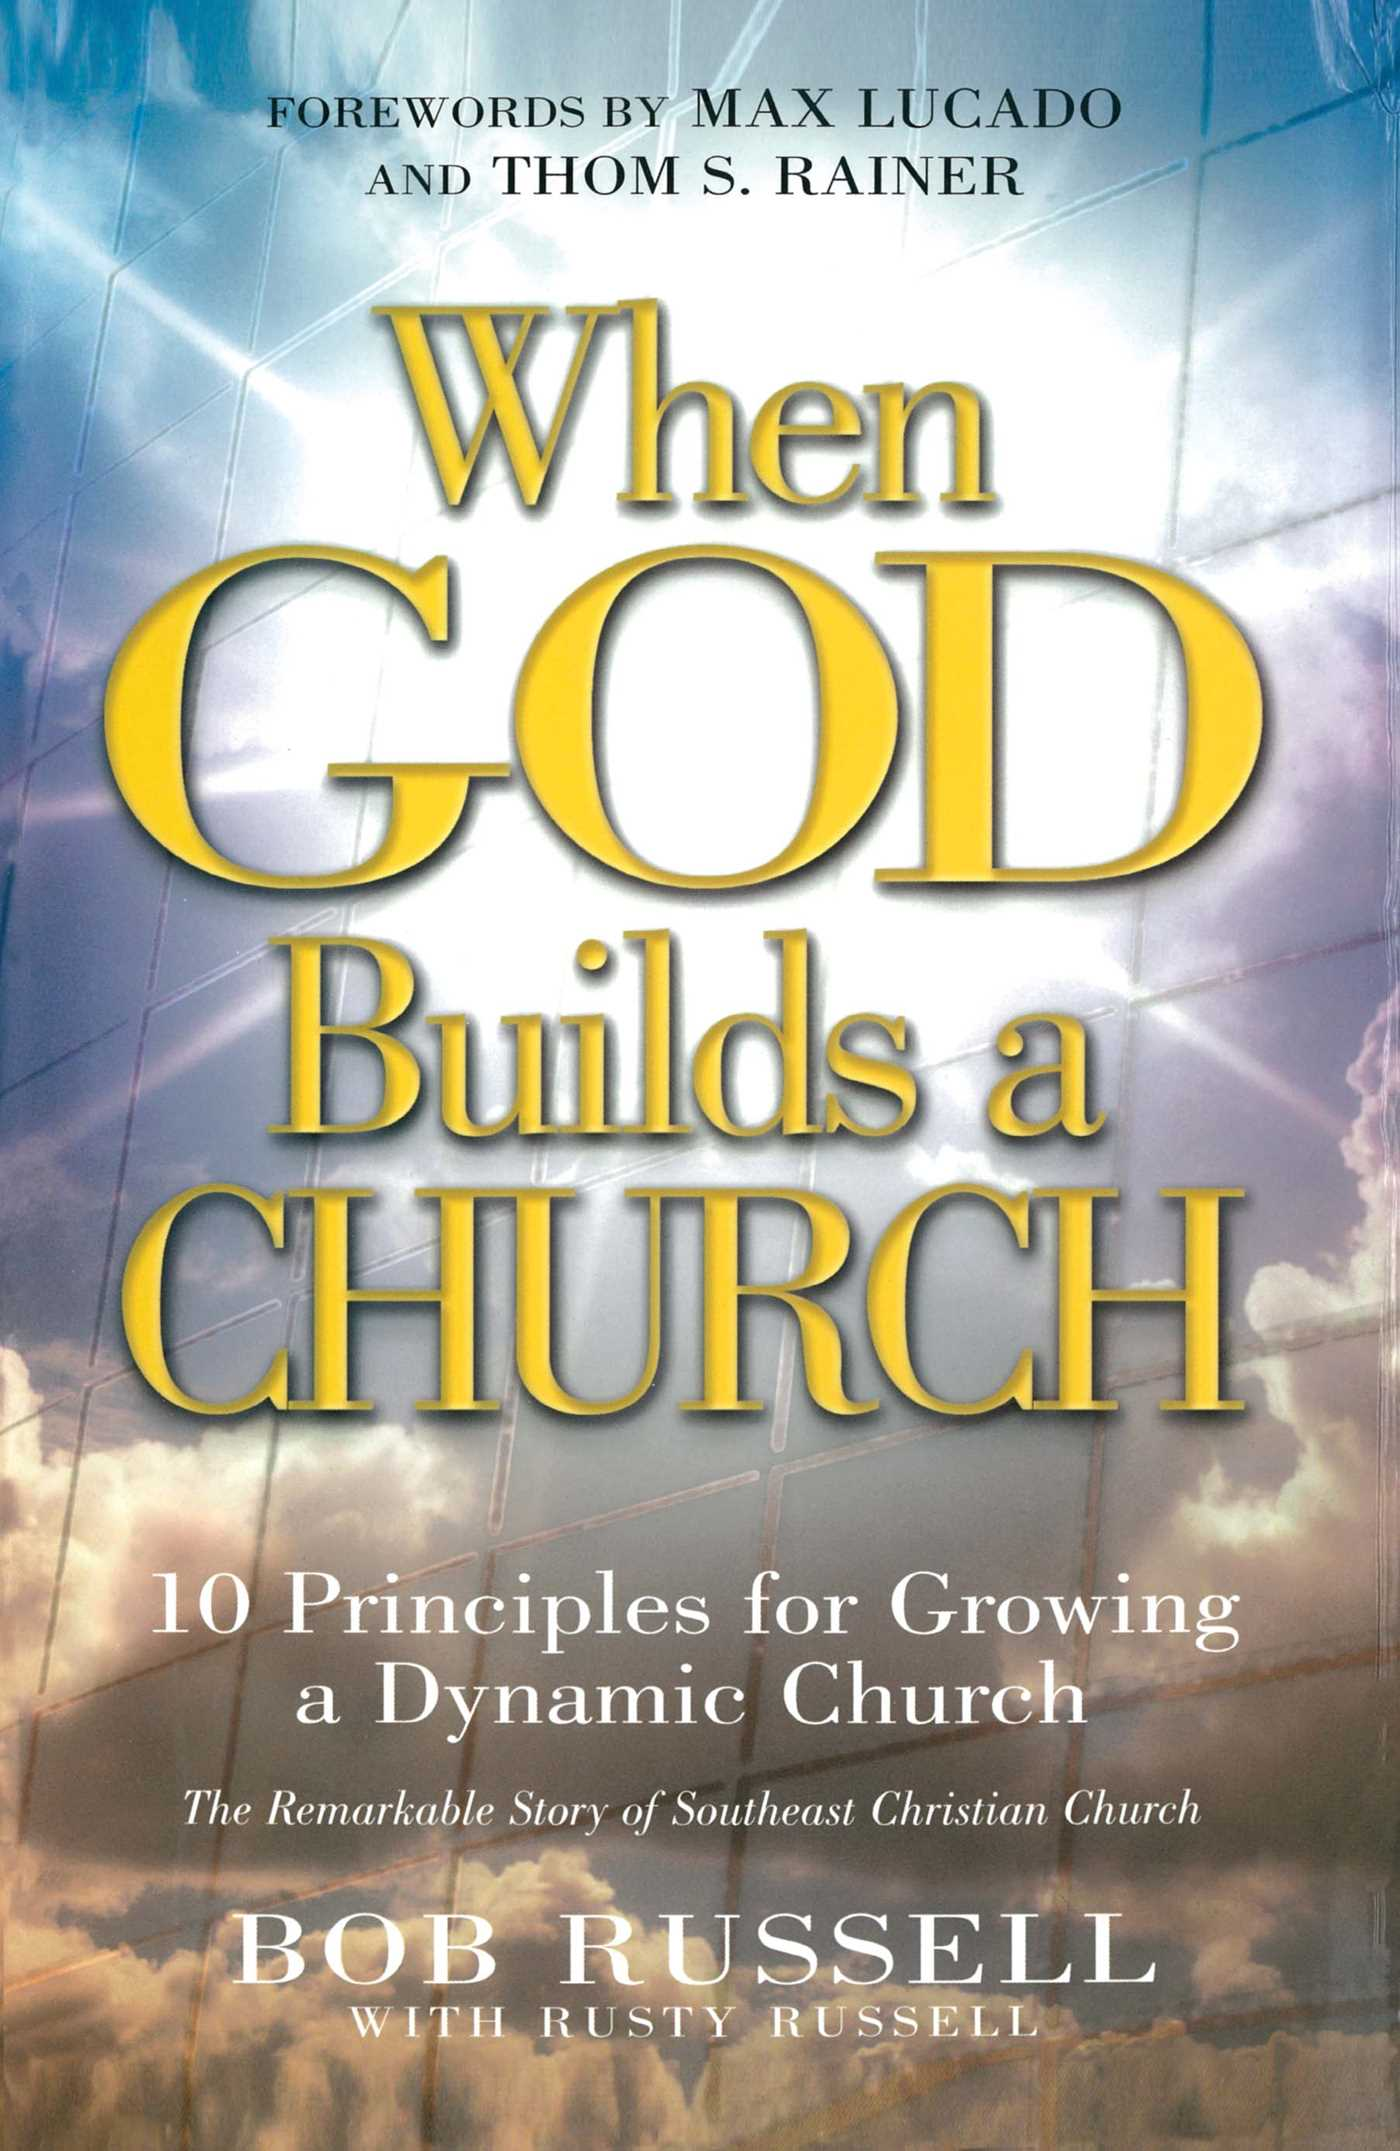 When-god-builds-a-church-9781451604795_hr